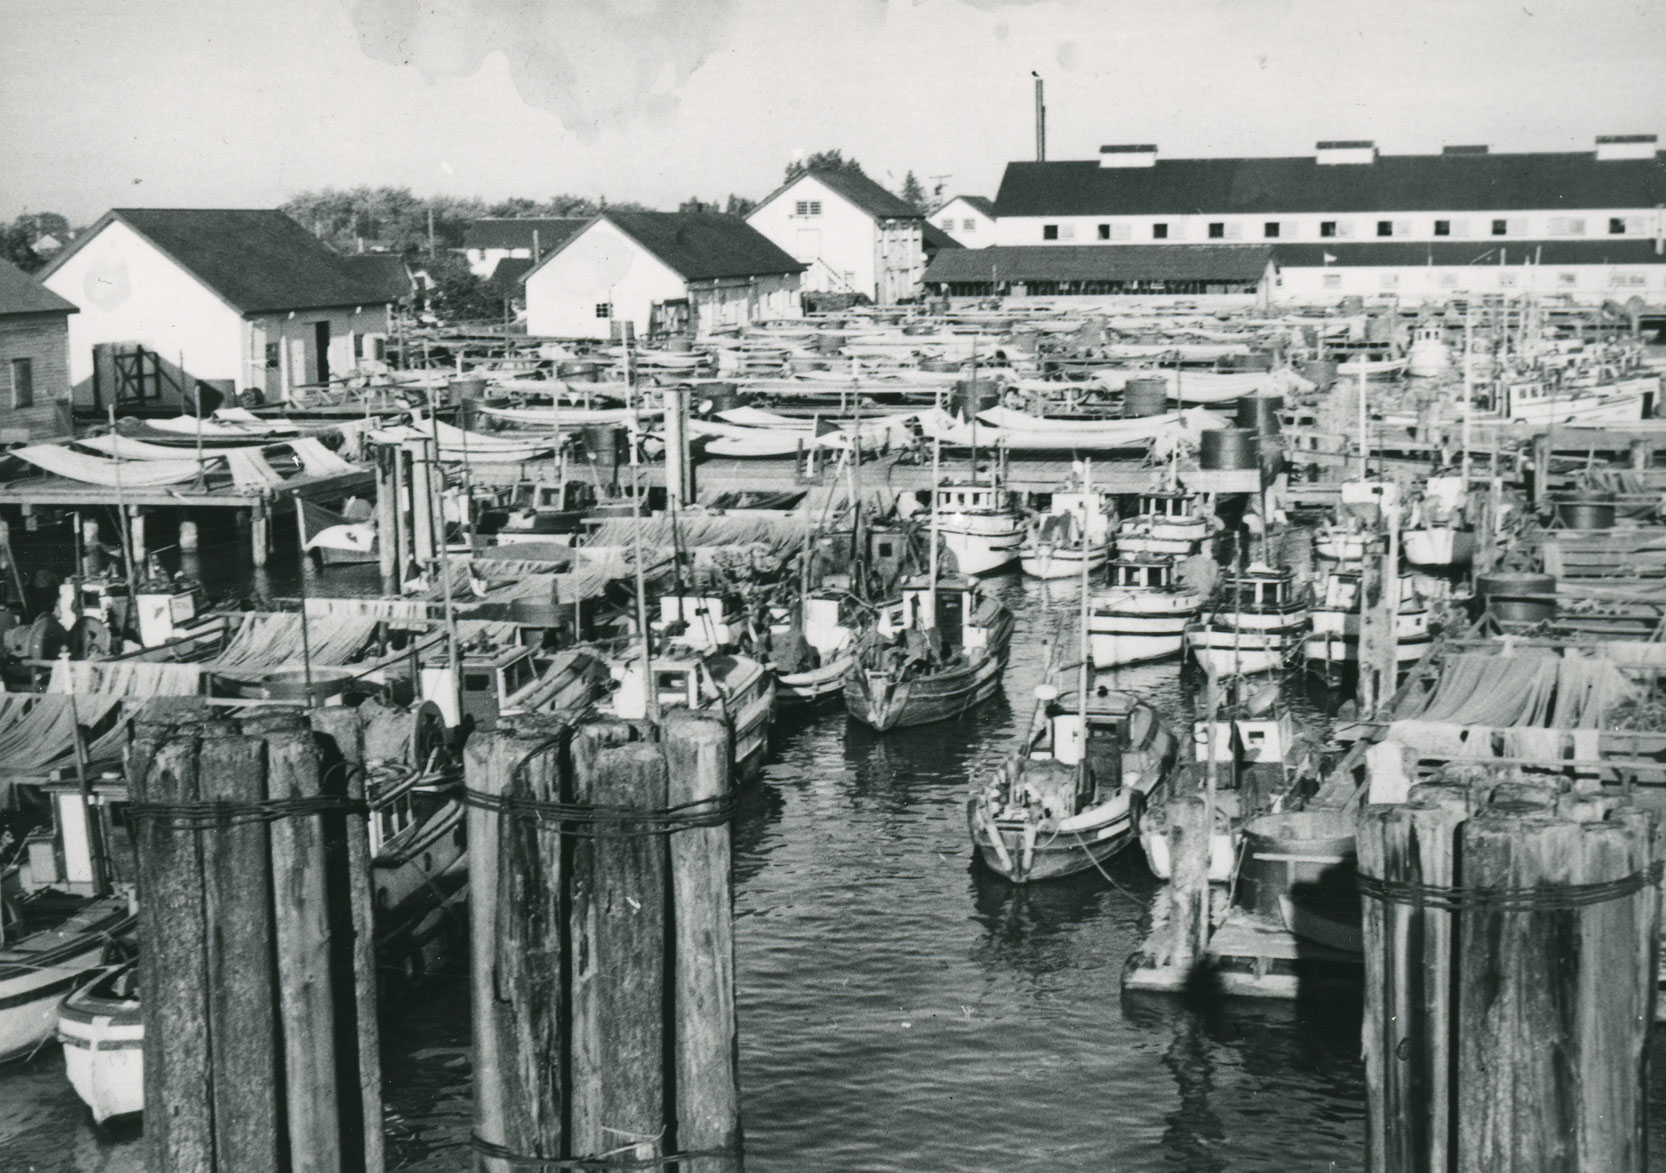 Many fishing boats and racked nets are visible in the harbour. Gulf of Georgia Cannery buildings in the background.